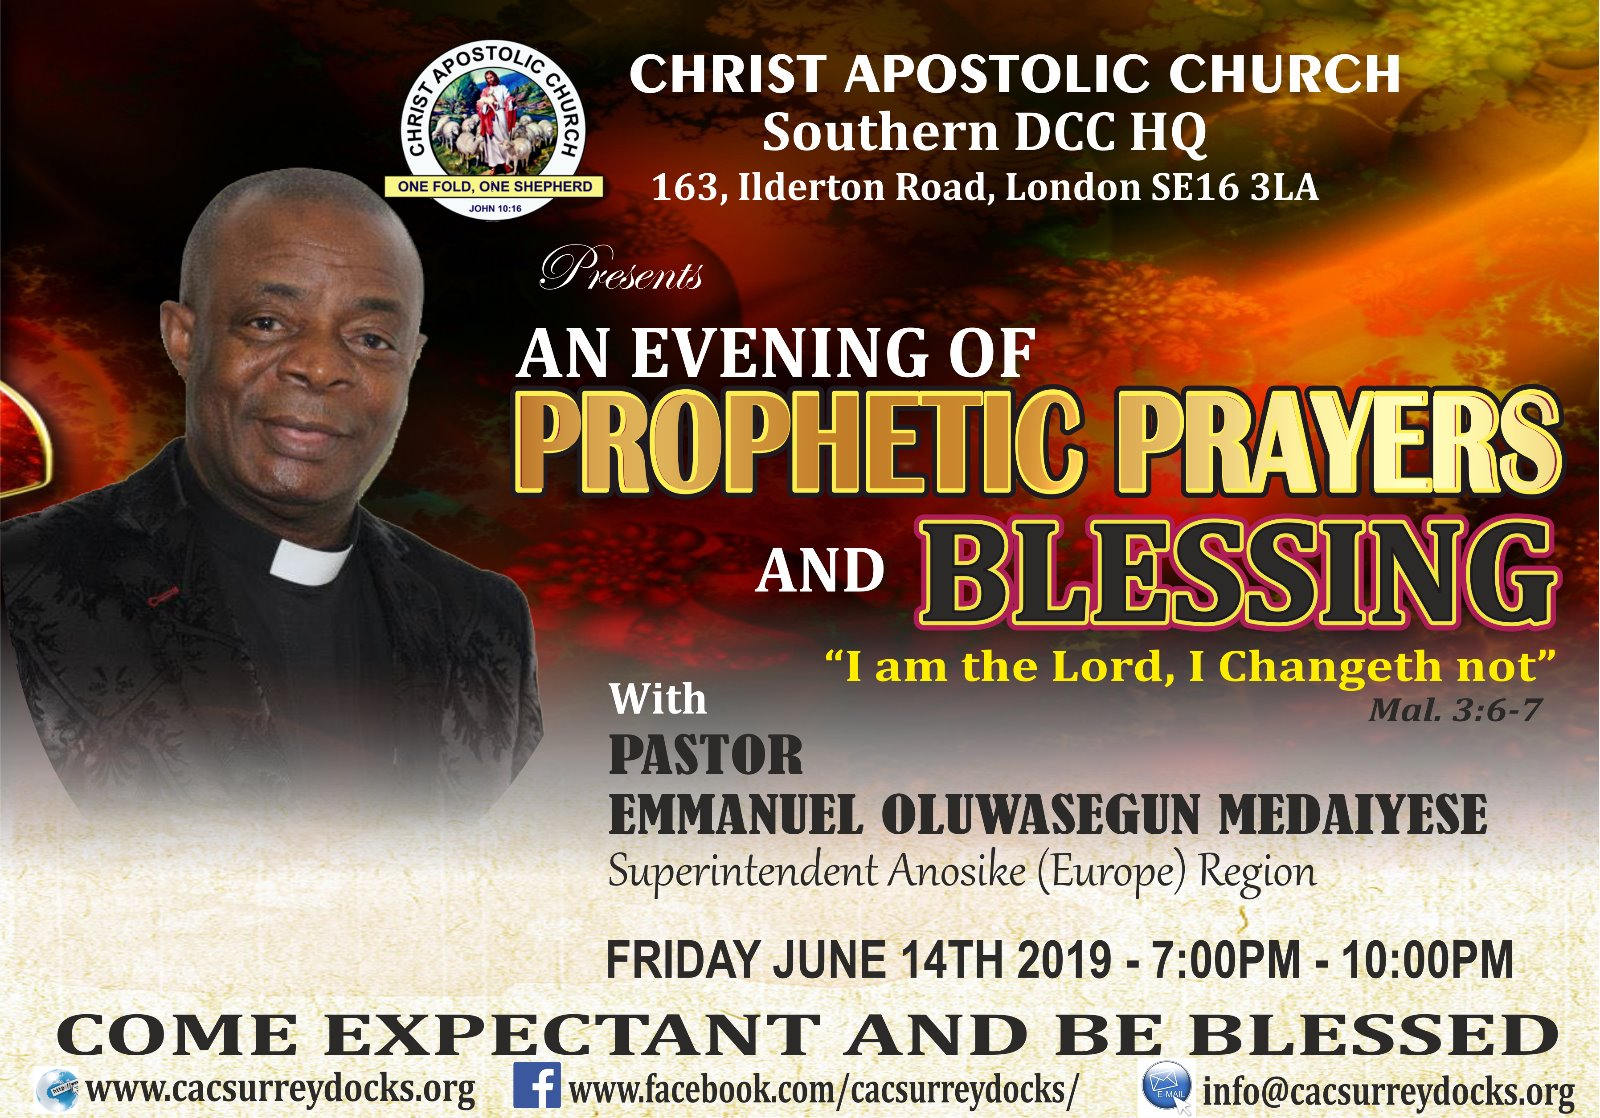 An Evening of Prophetic Prayers and Blessing – Christ